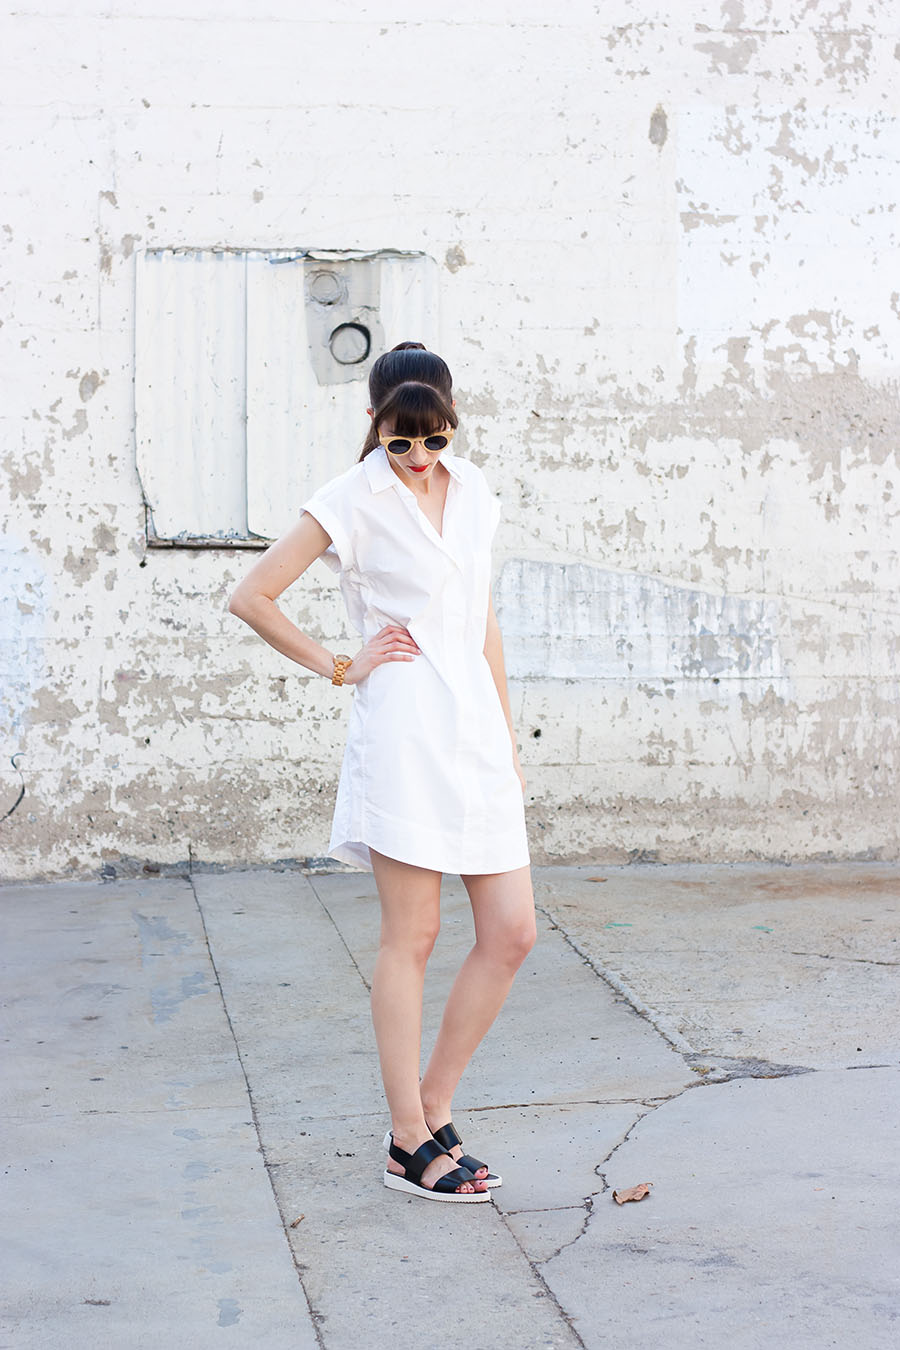 Short Sleeve Cotton Shirtdress, J.Crew, Everlane, Minimalist Outfit, Black and White Outfit